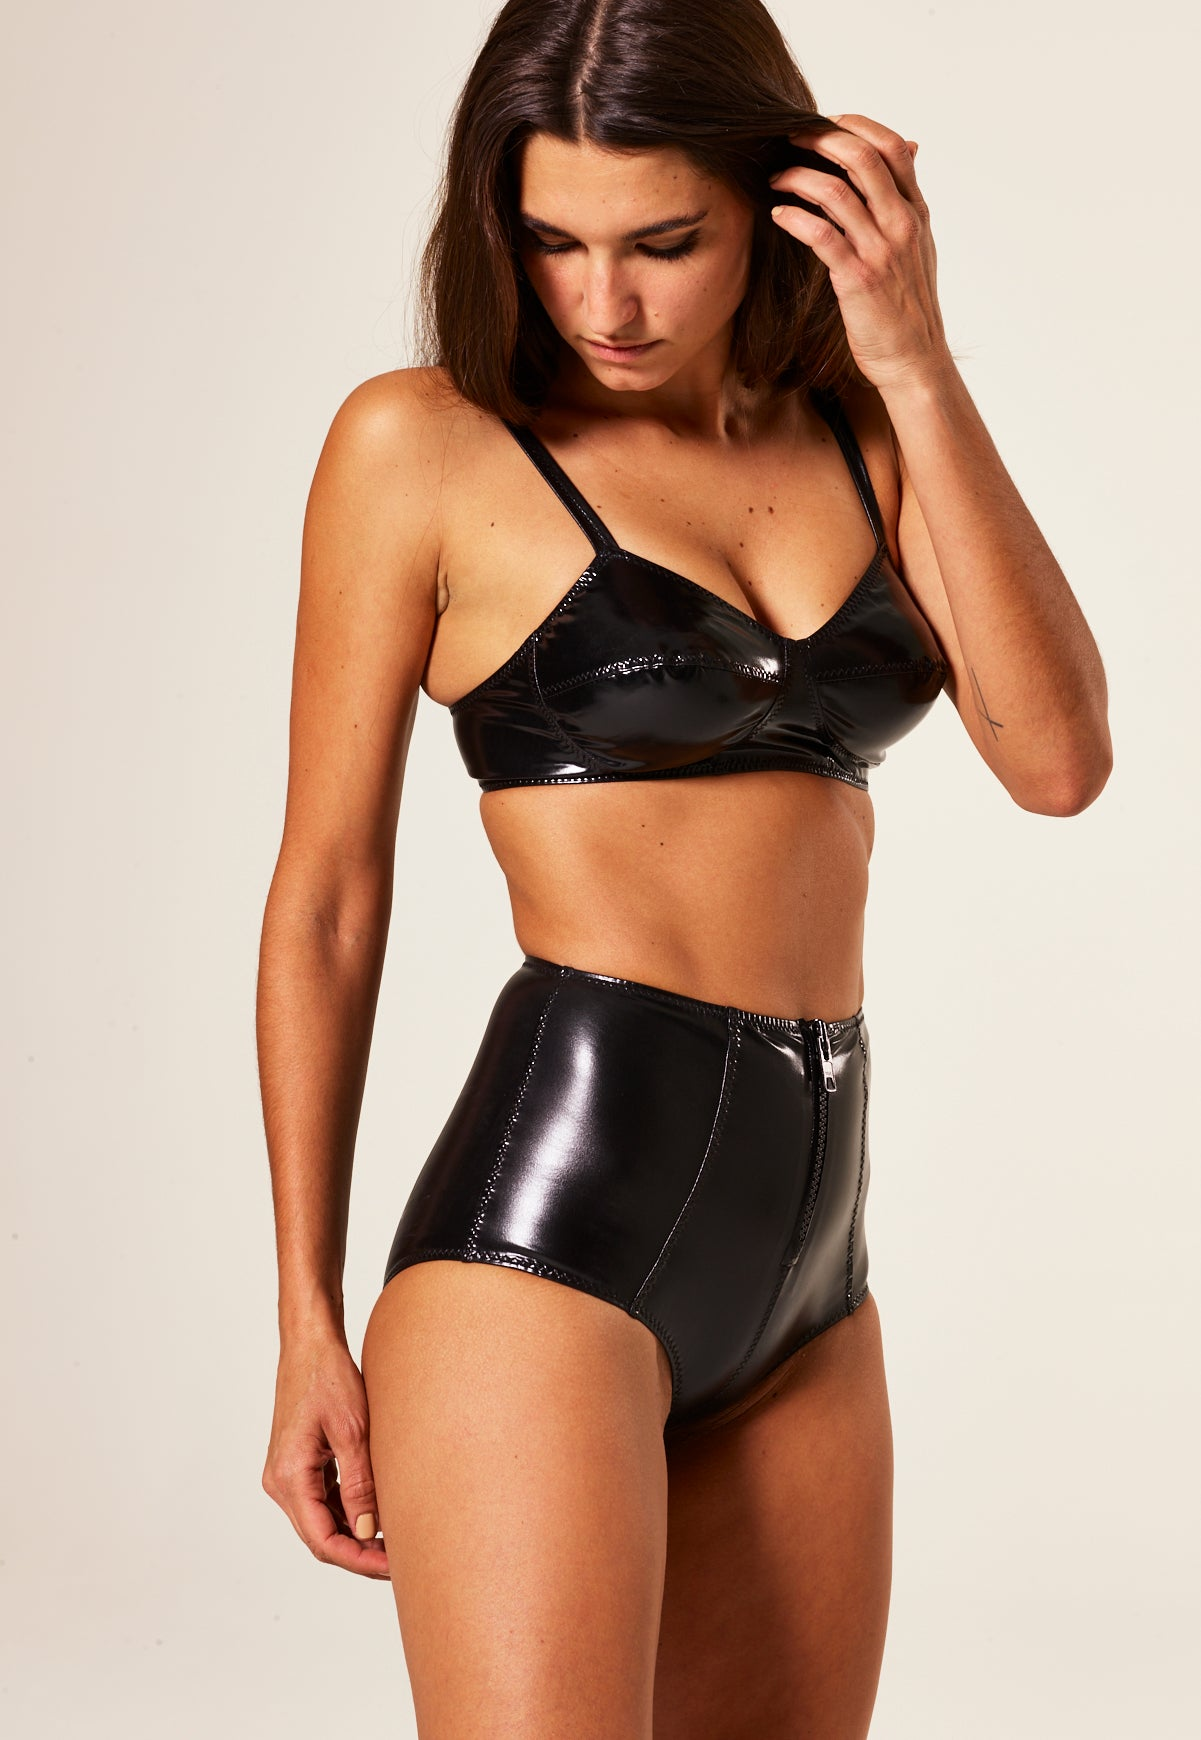 GOLDWYN BLACK PVC HIGH-WAIST BIKINI